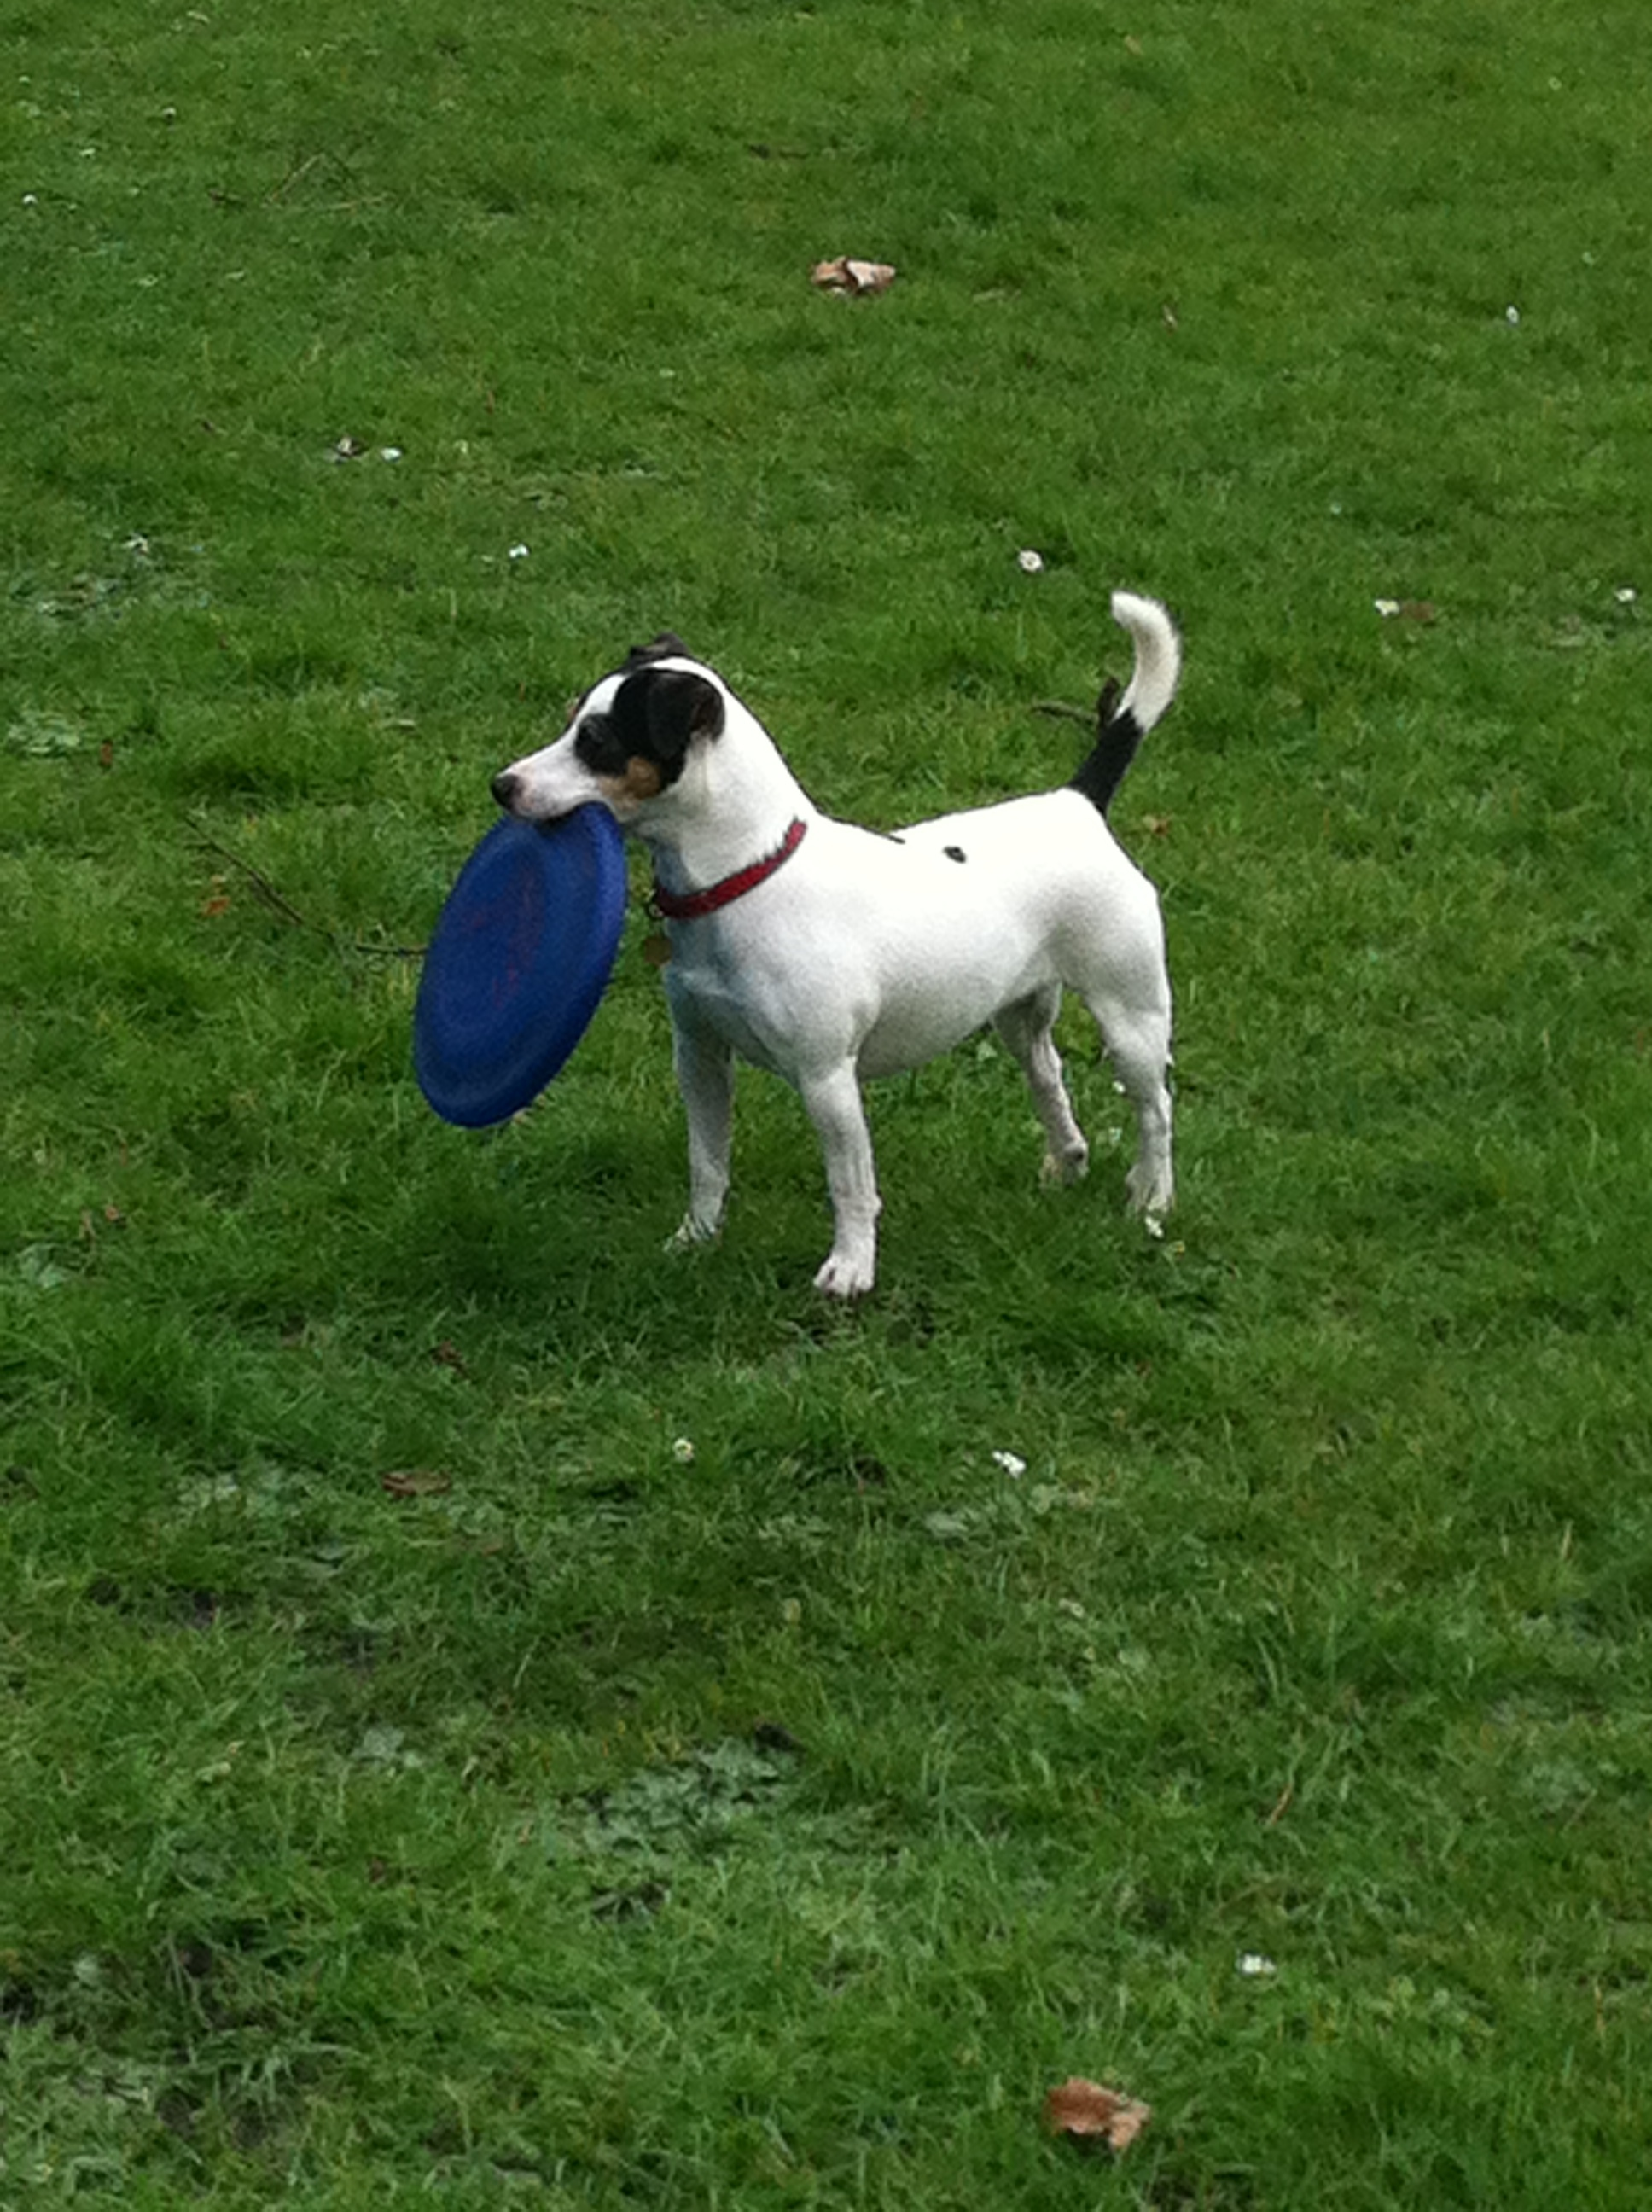 """When I catch the frisbee it's very important that everyone watching shouts, """"Booyah!"""" I just caught the frisbee so...."""